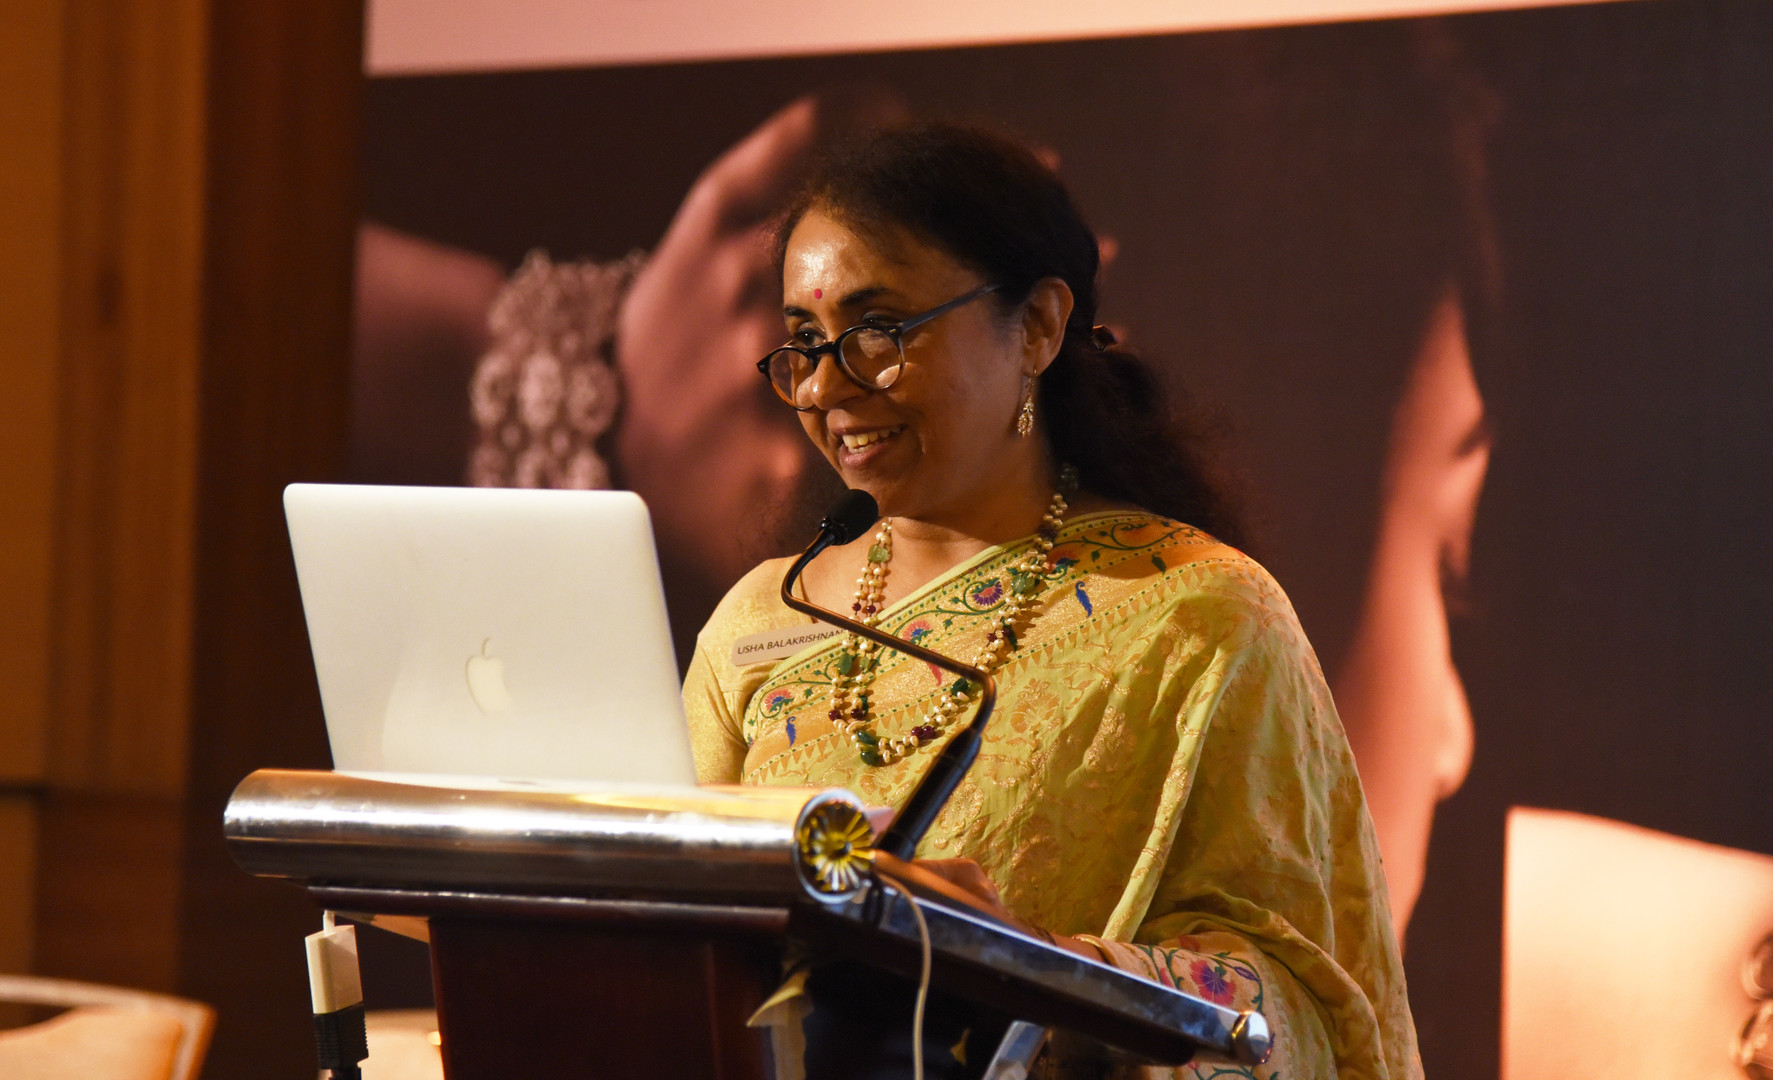 Conference curator, author and renowned jewellery historian Dr. Usha Balakrishnan chronicled the exemplars of Indian jewellery.